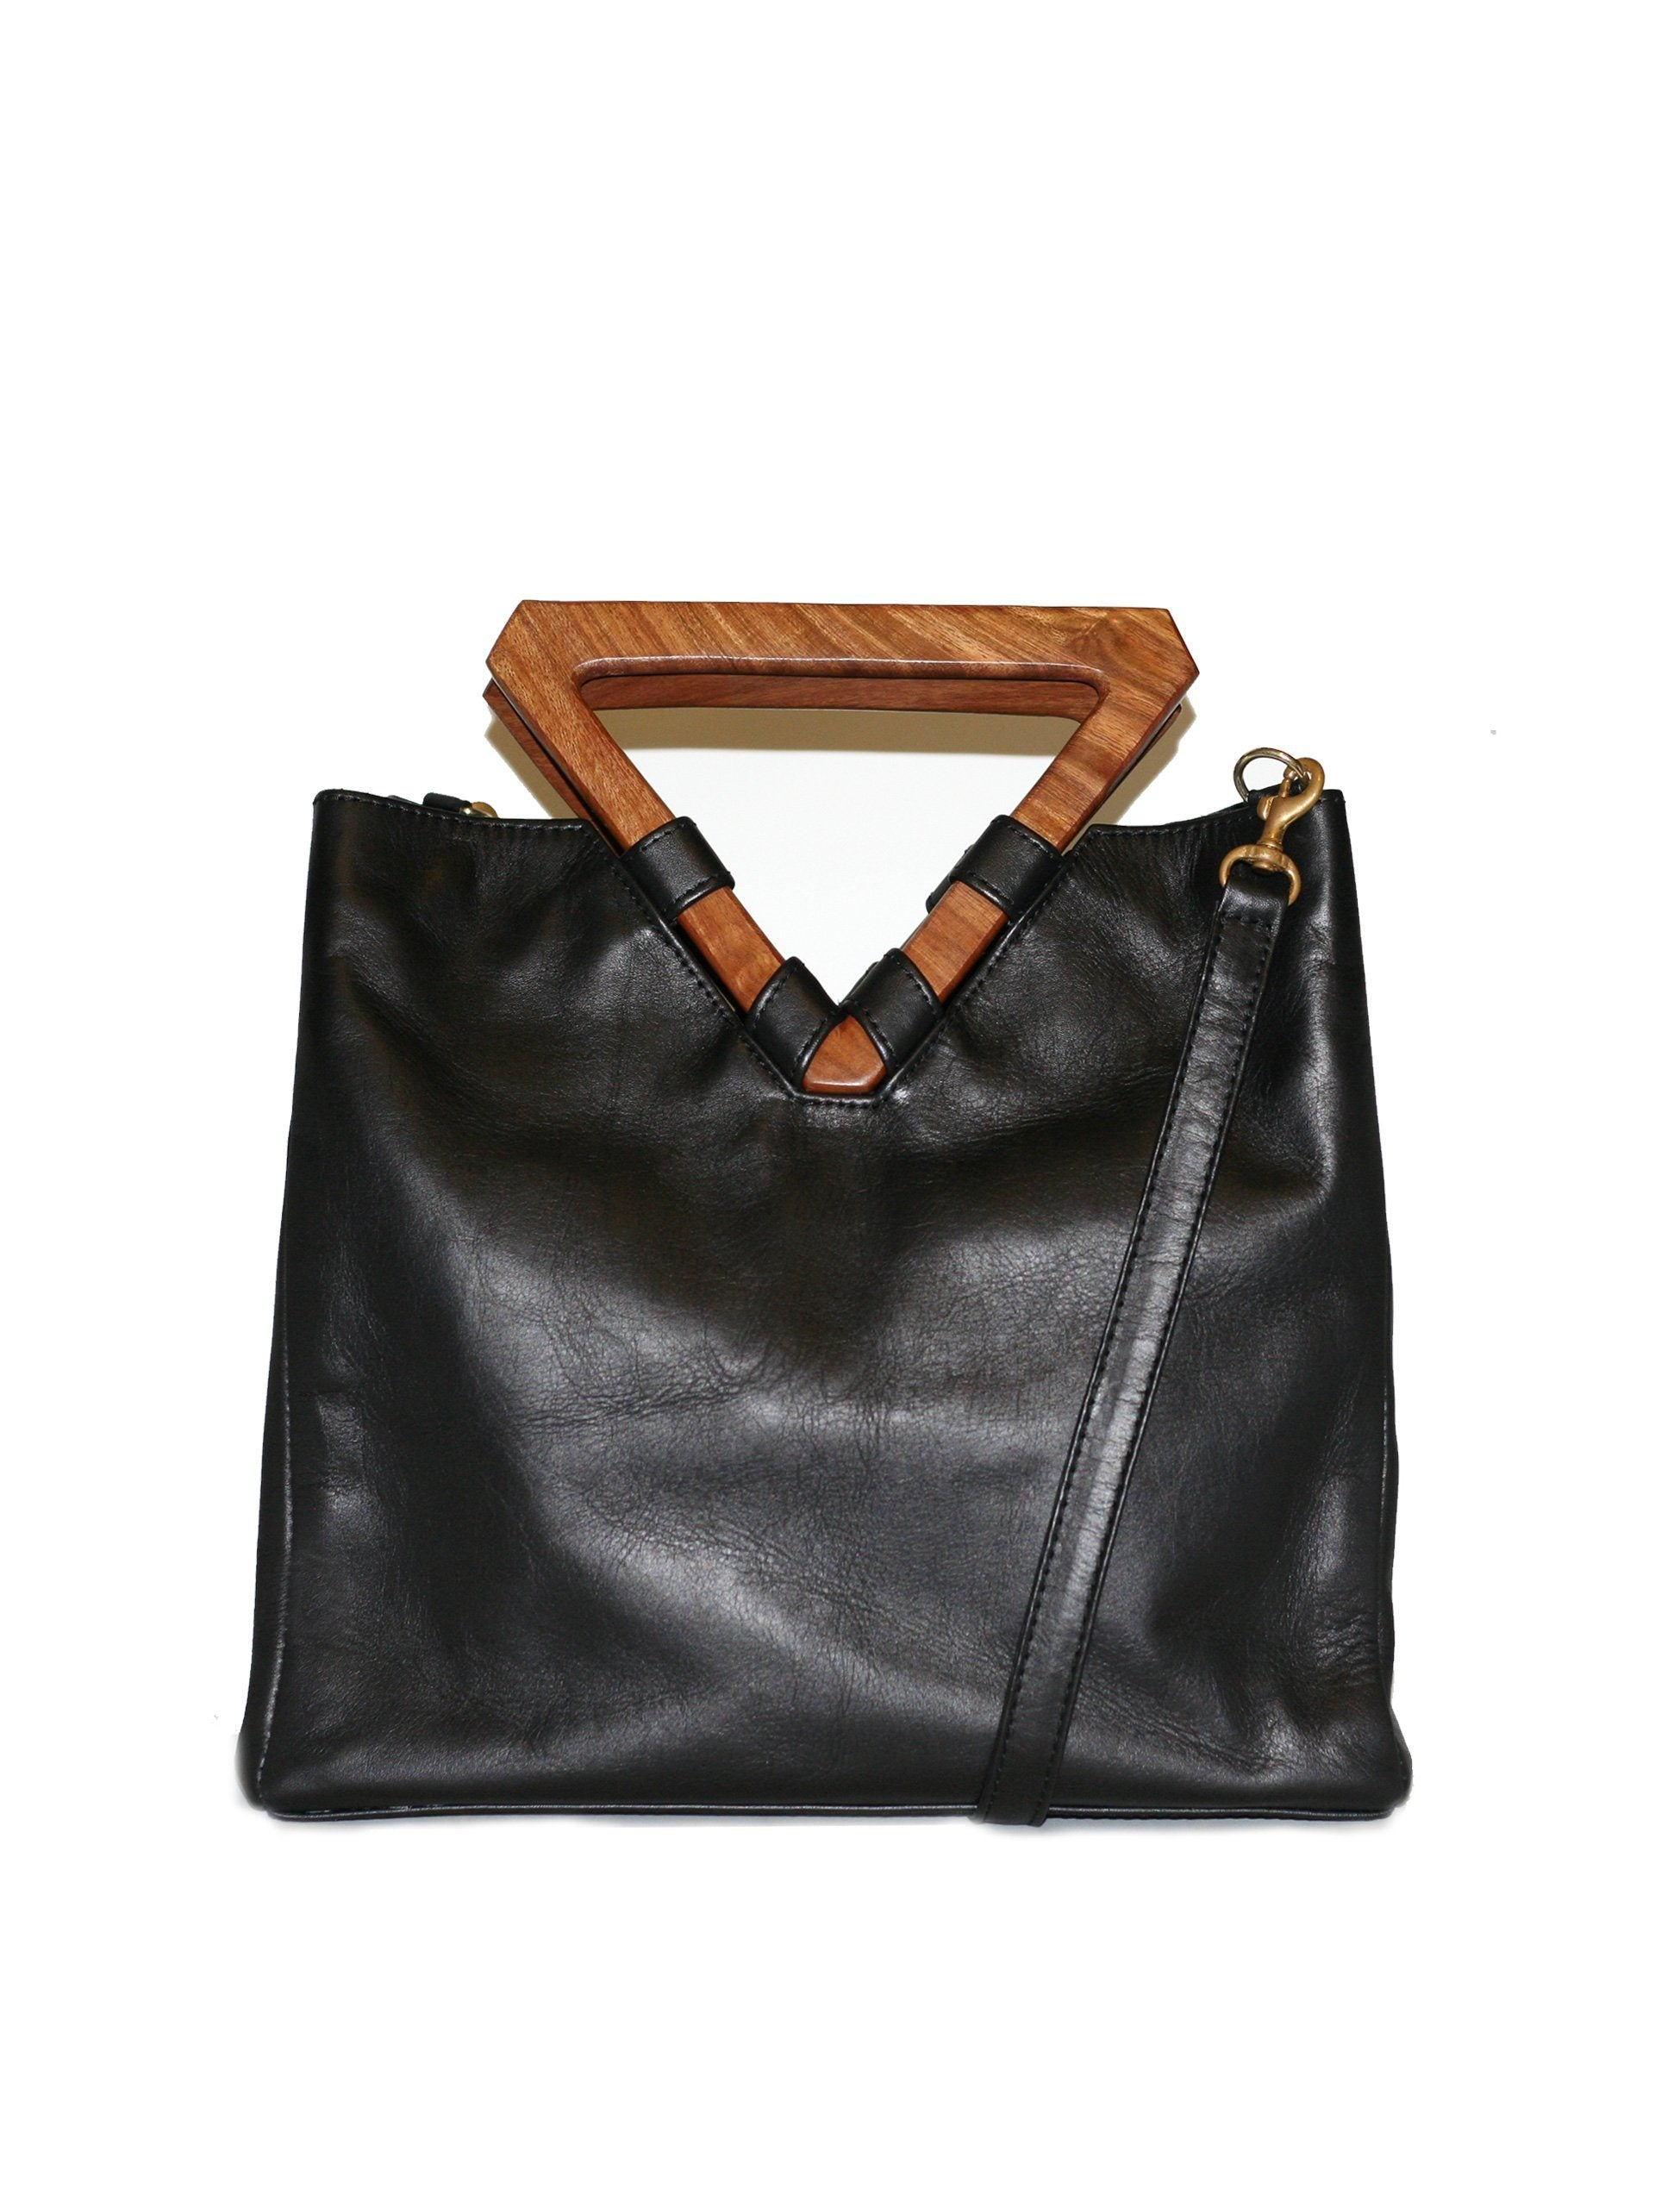 Perfect bag for business and pleasure. Made from leather with wooden geometric top handle. Also includes removable shoulder strap.